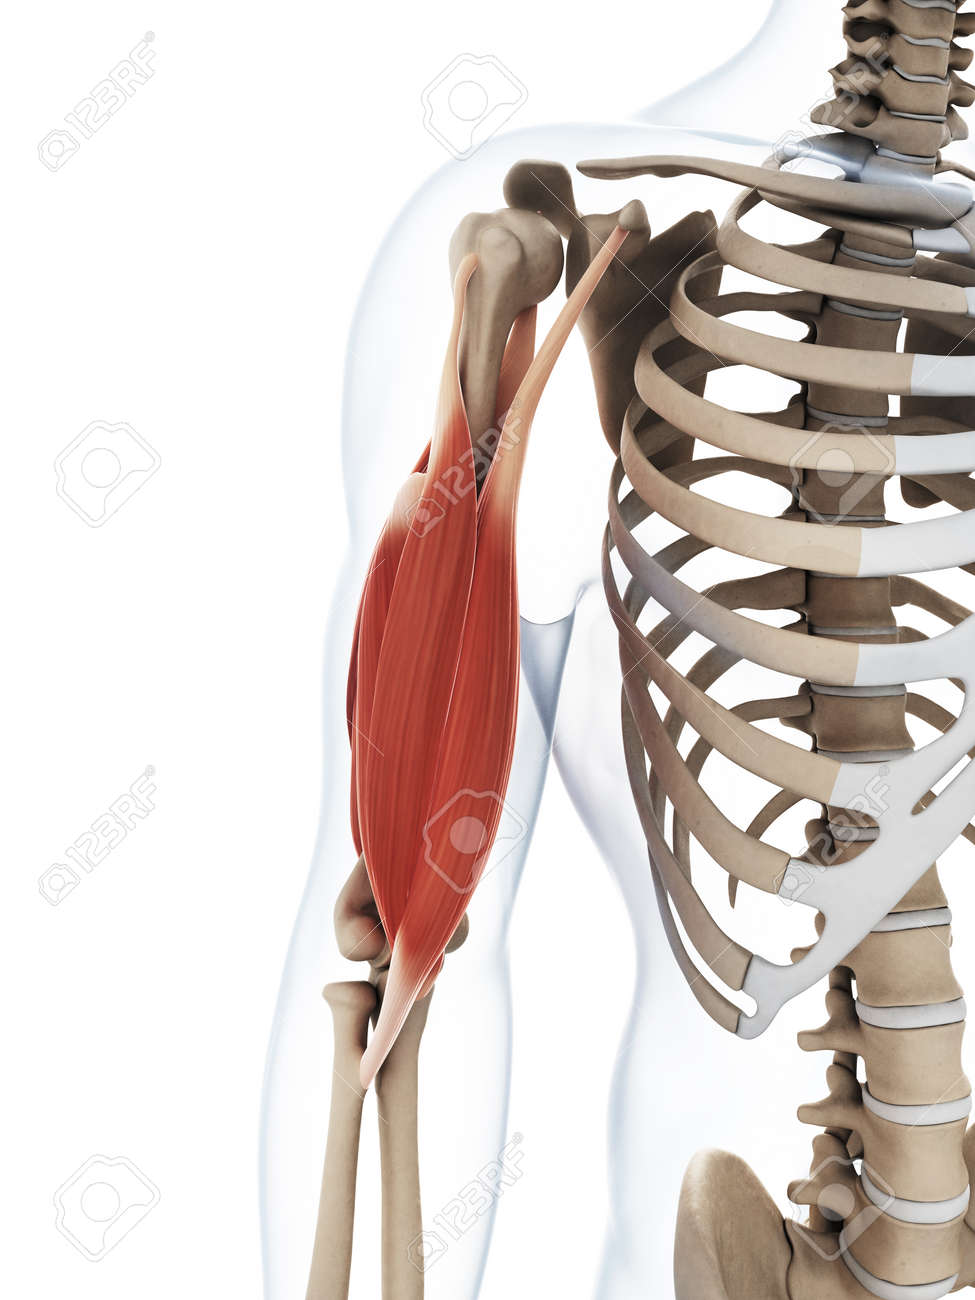 3d Rendered Illustration Of The Upper Arm Muscle Stock Photo